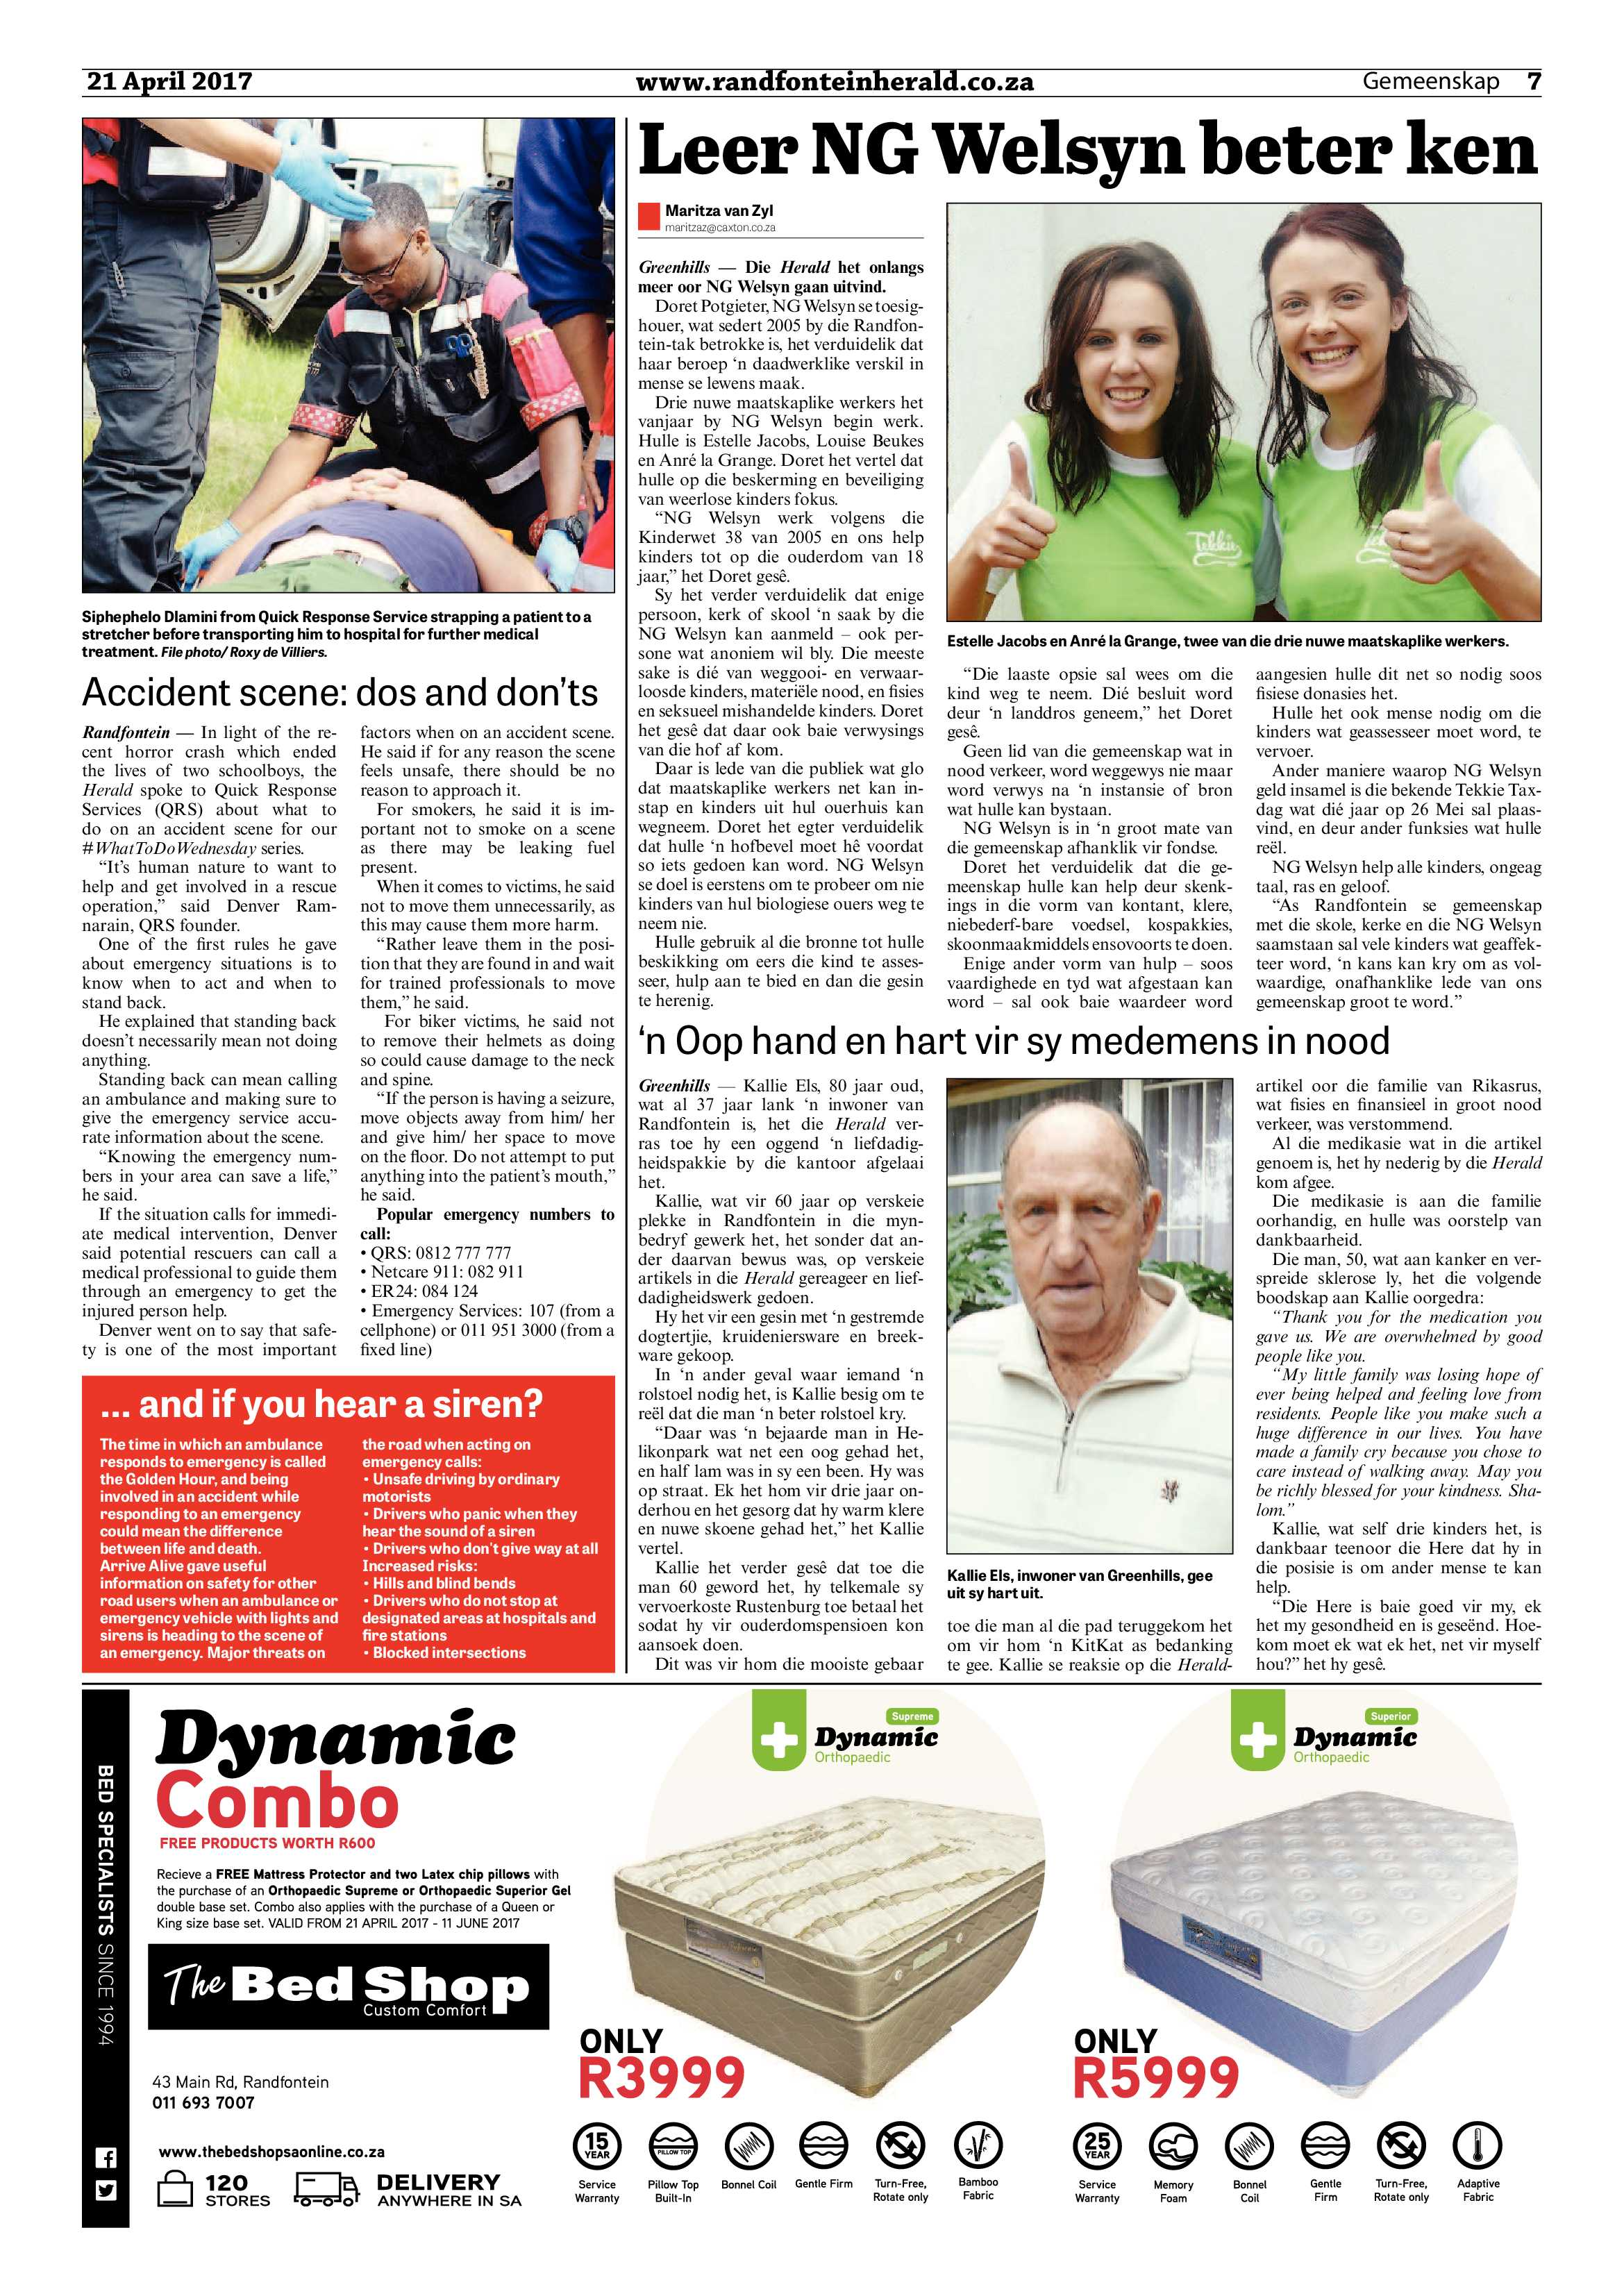 randfontein-herald-21-april-2017-epapers-page-7